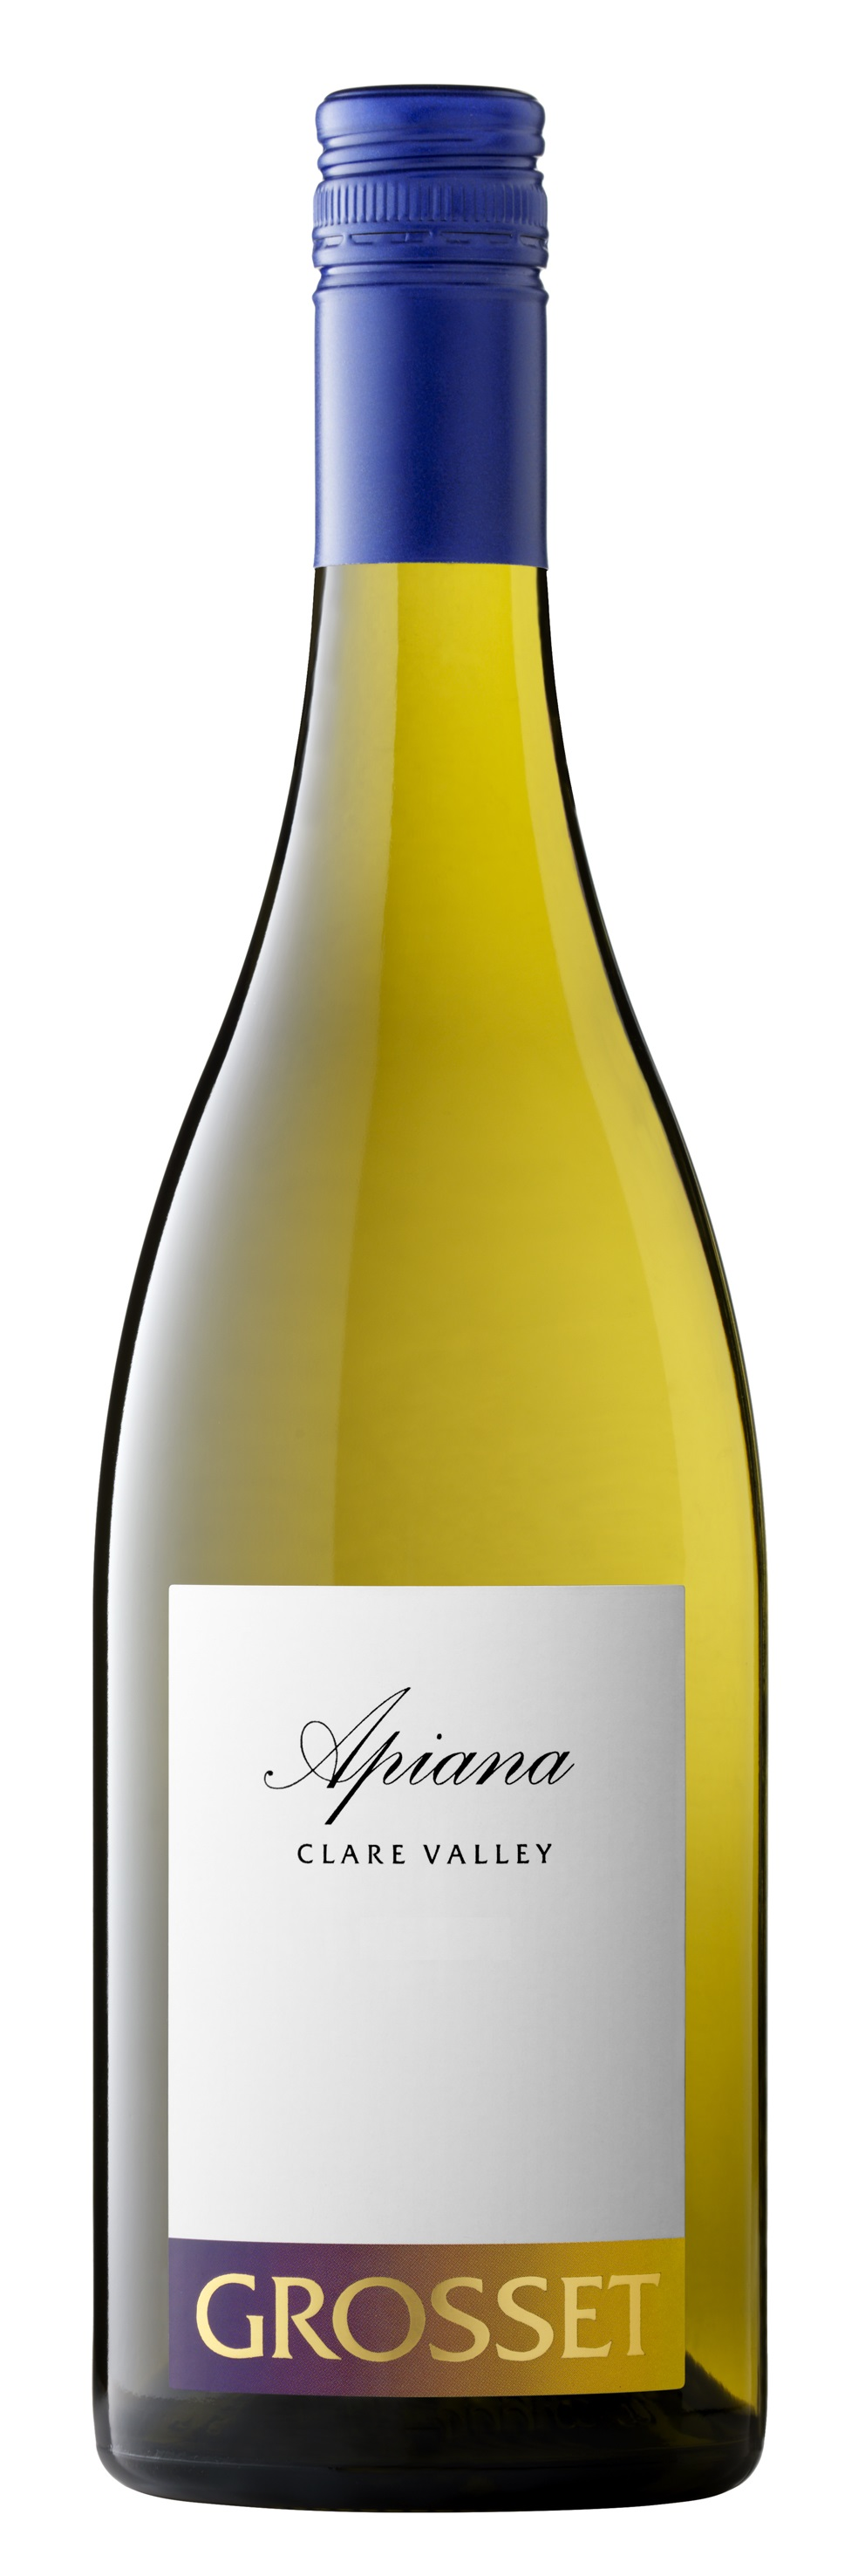 Grosset, `Apiana` Clare Valley  2015